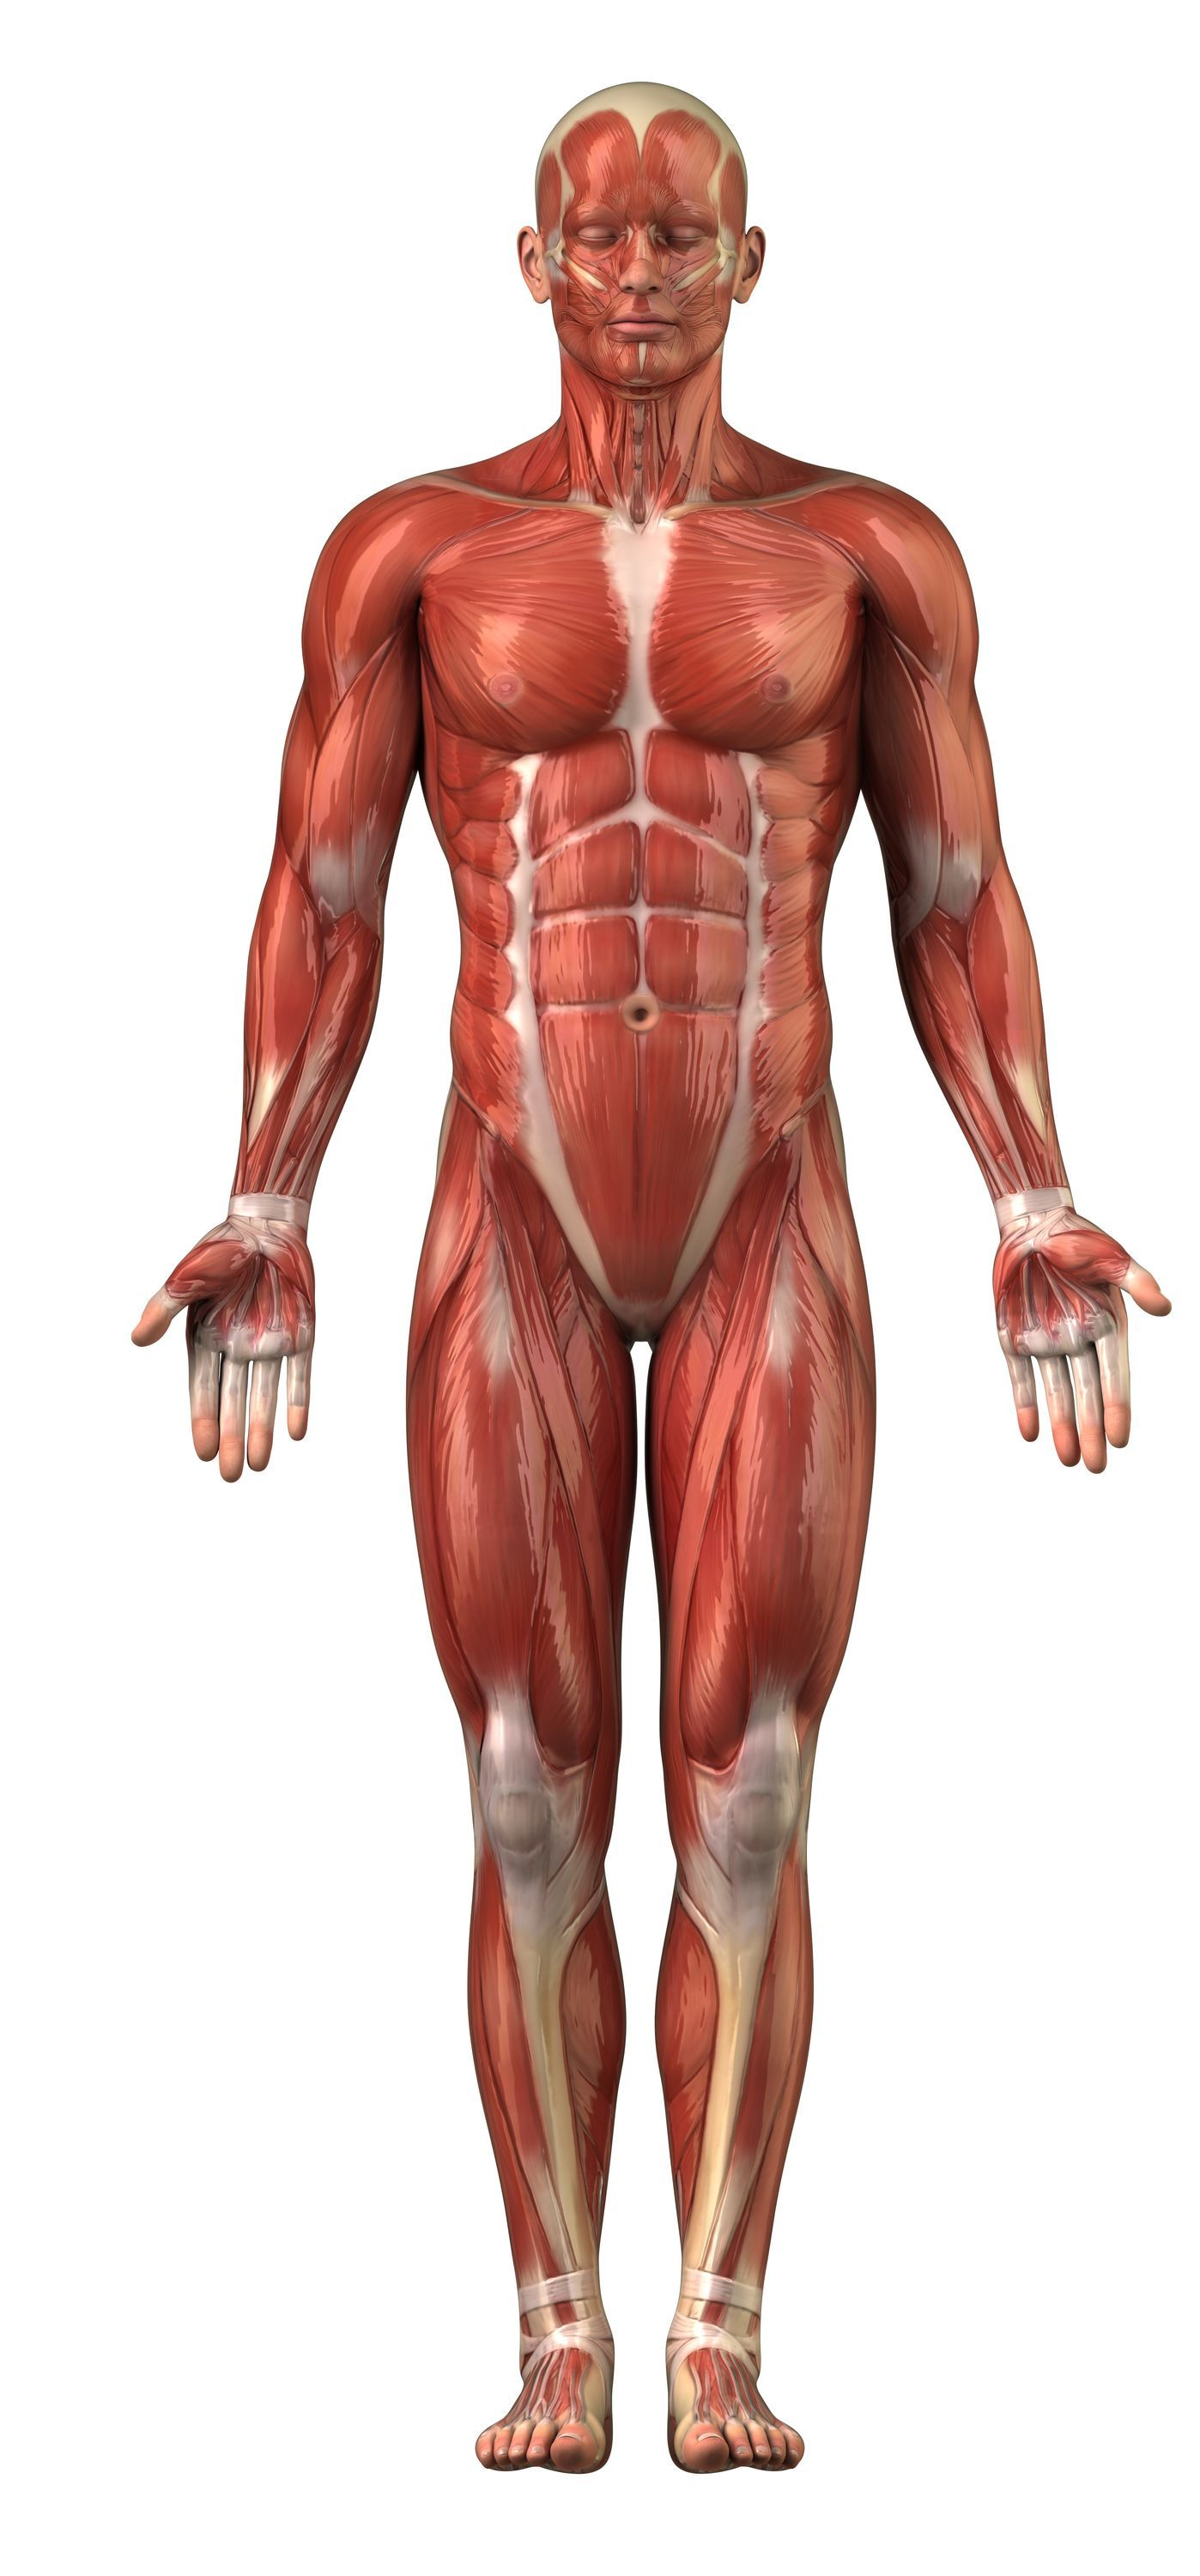 body muscles images – applecool, Muscles